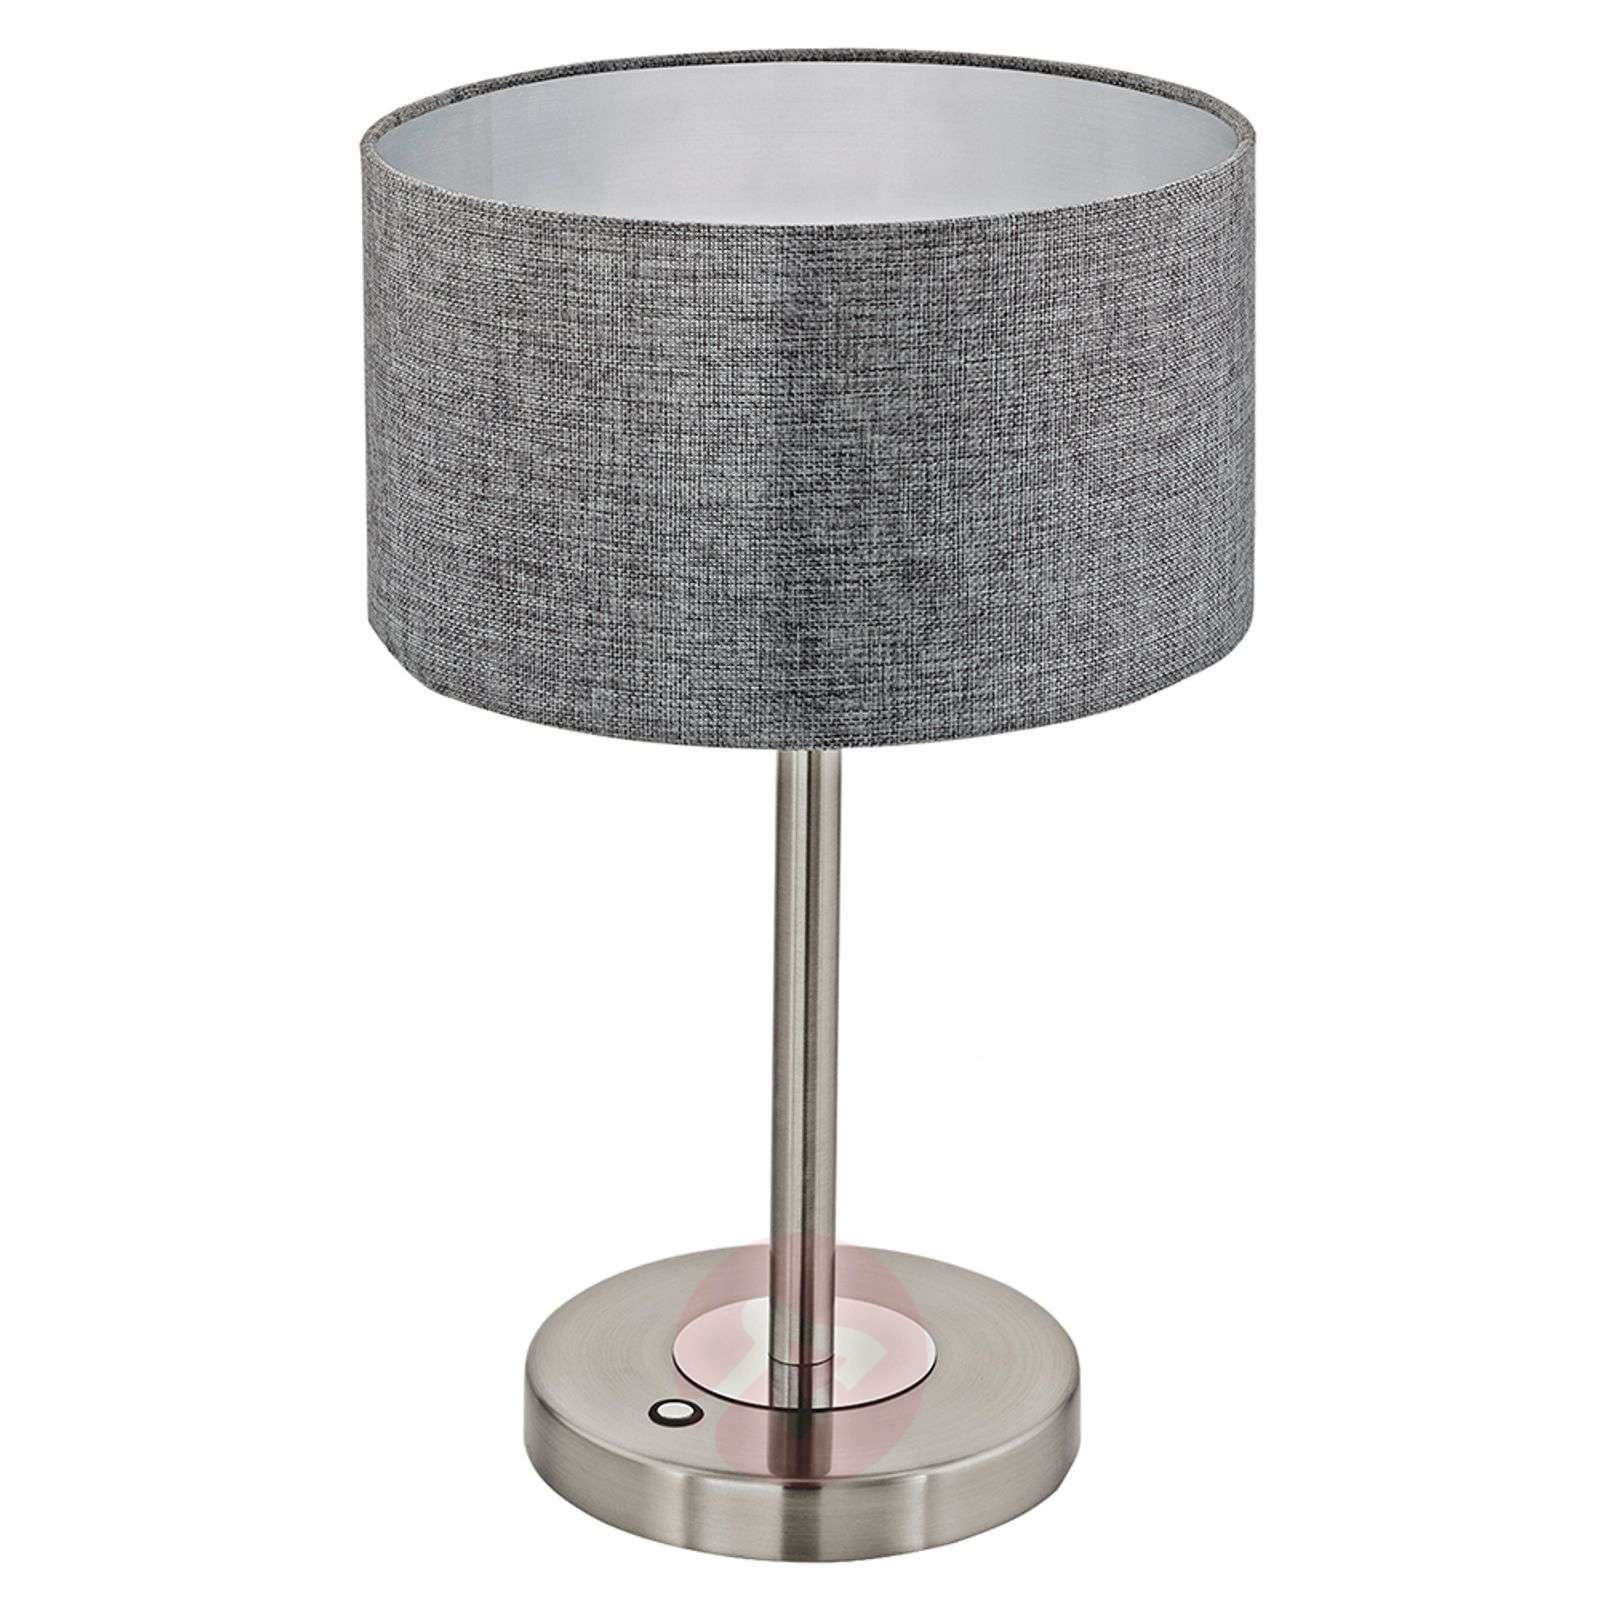 Stylish Romano LED table lamp with fabric shade